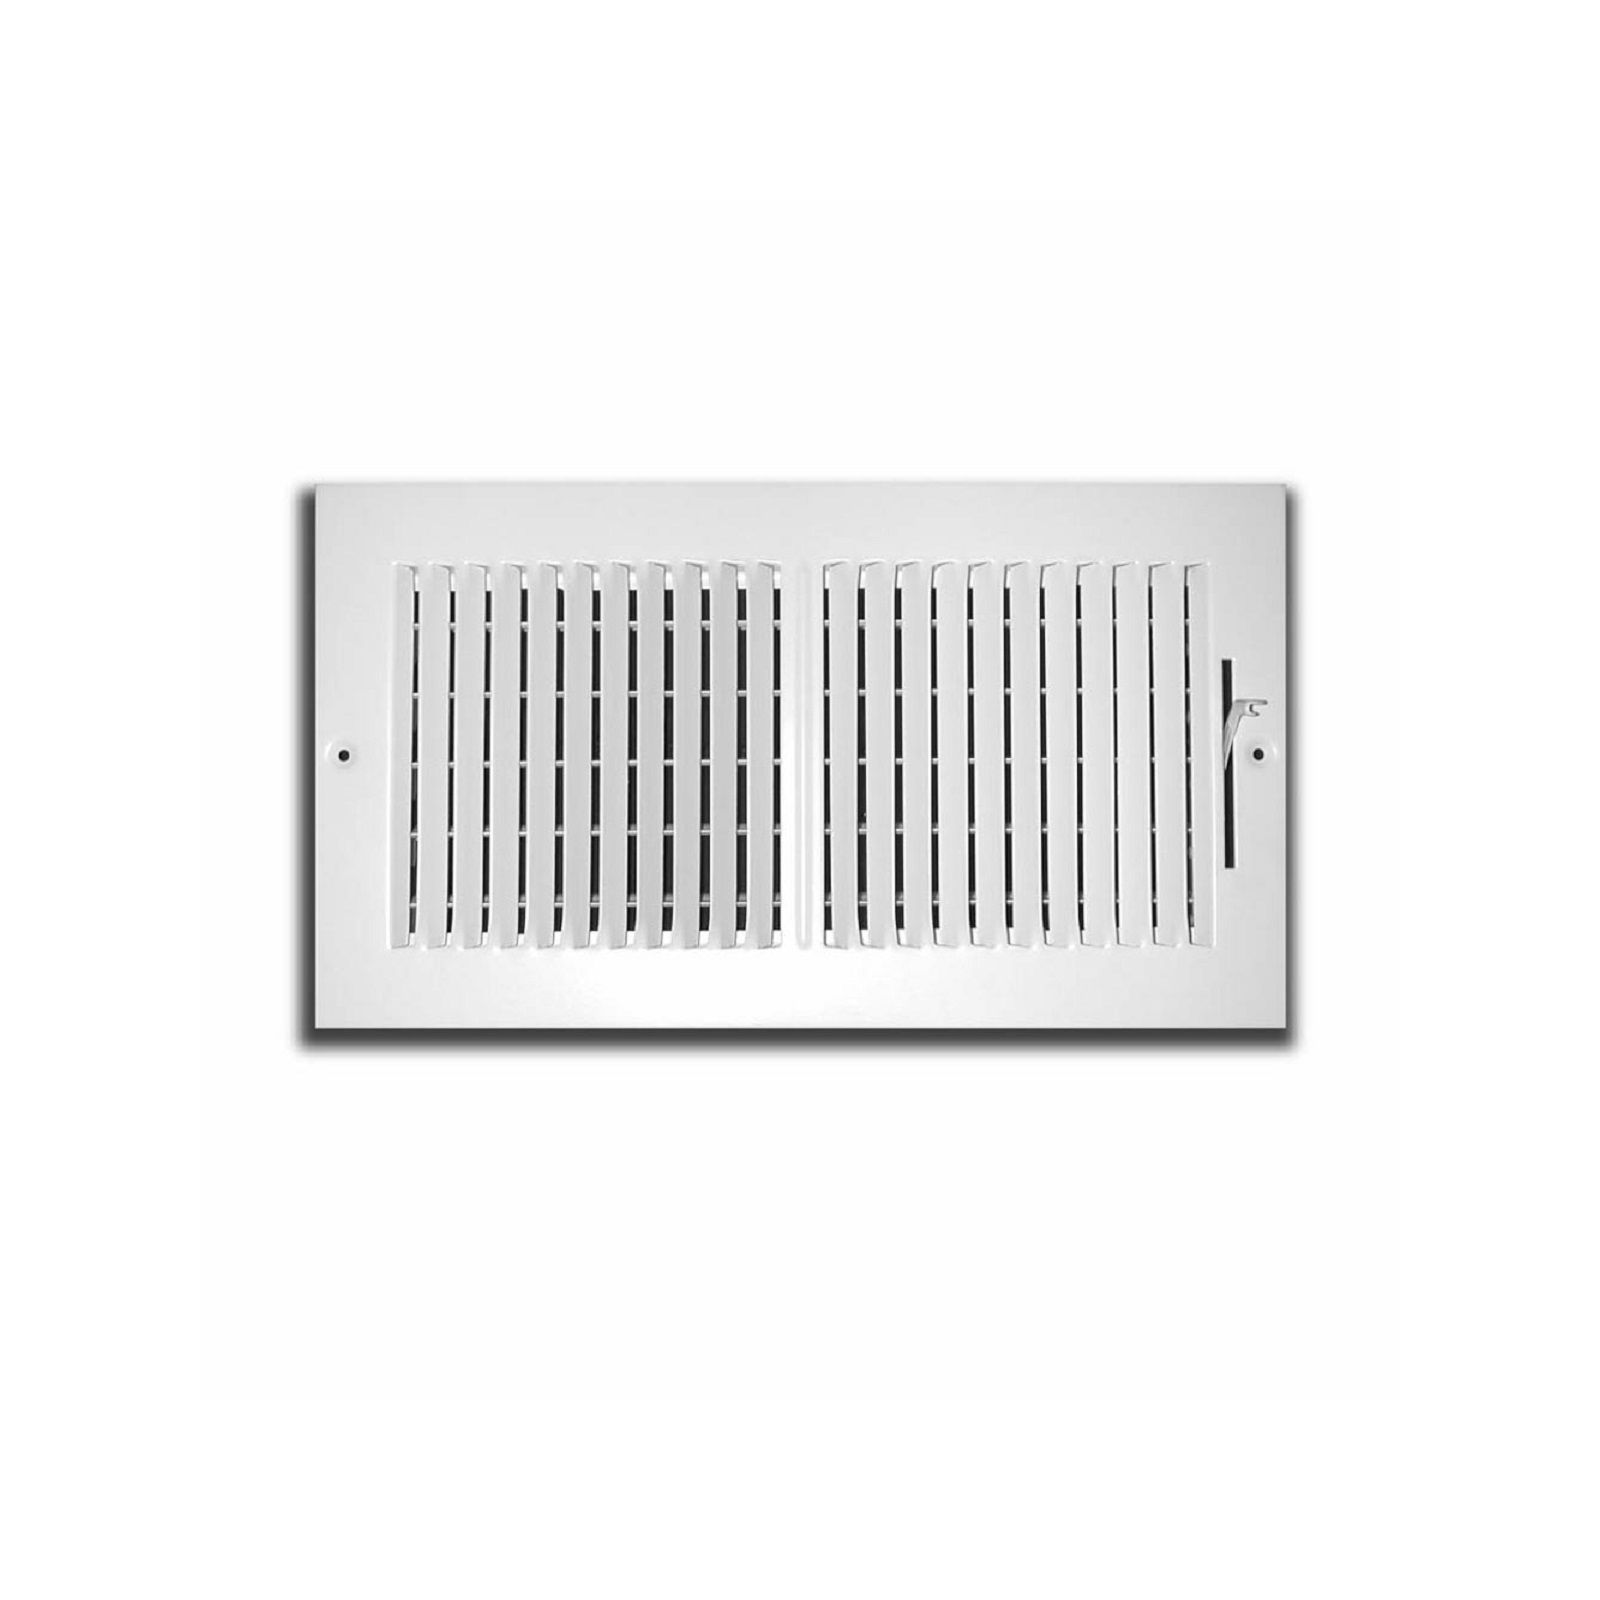 "TRUaire 102M 08X04 - Stamped Steel 2-Way Wall/Ceiling Register, 08"" X 04"""